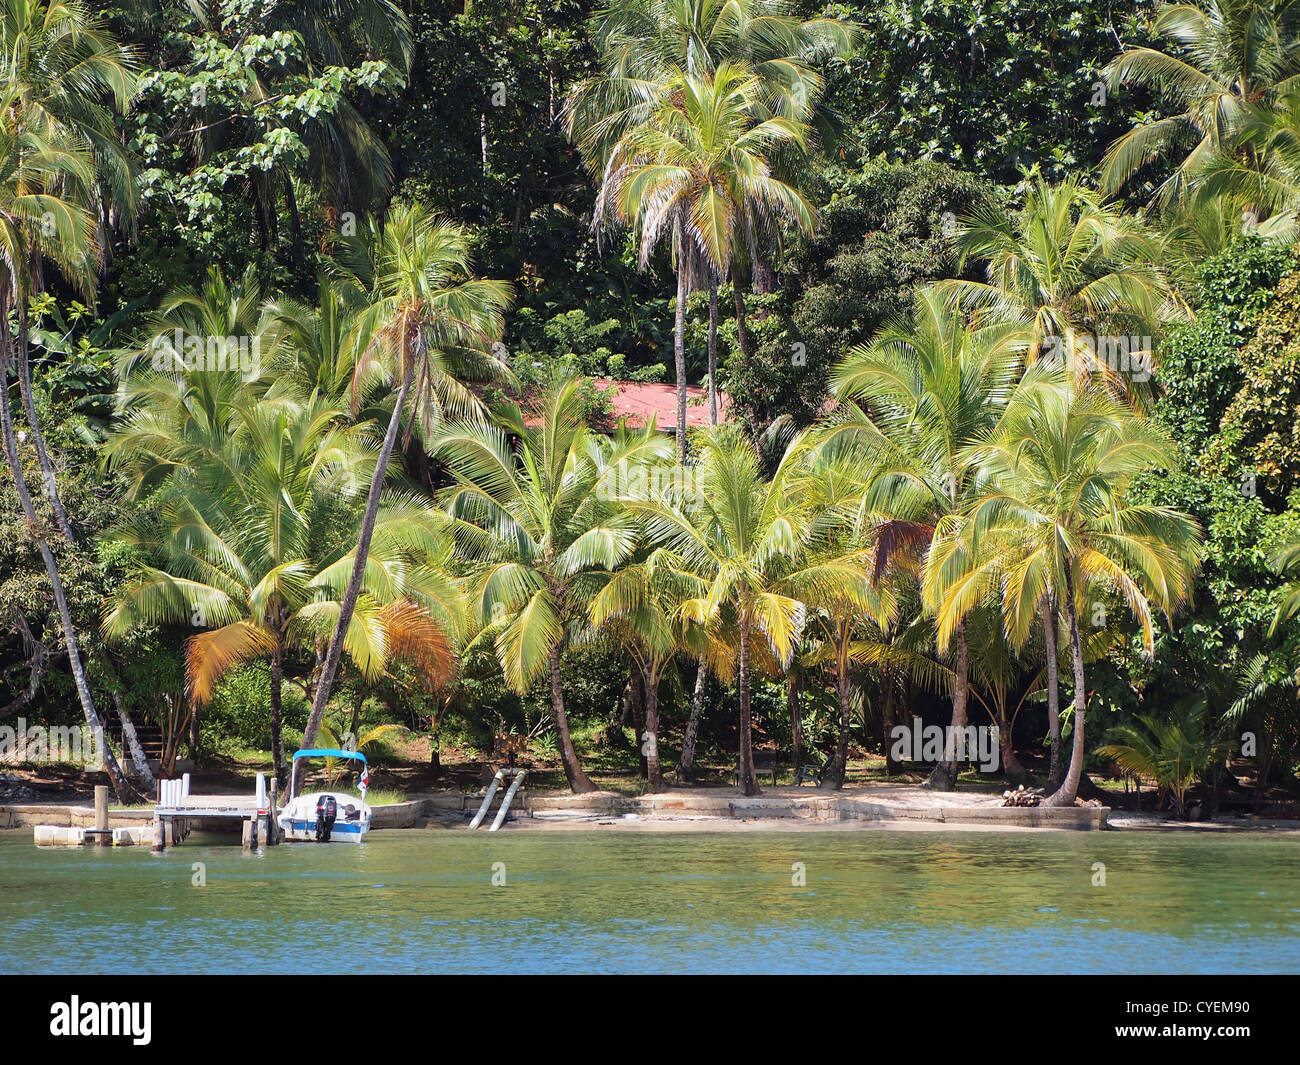 Private beach with lush vegetation on an island in the Caribbean sea - Stock Image